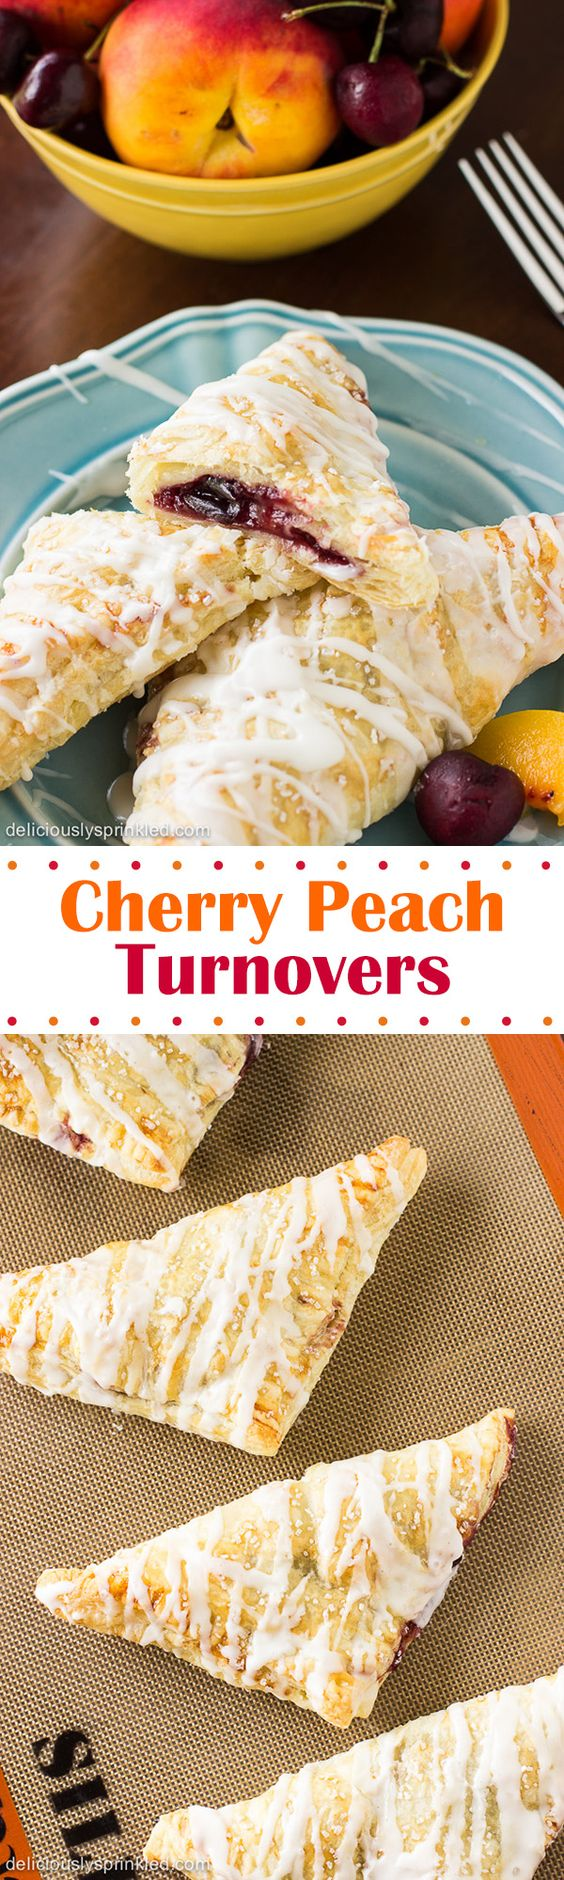 ... Peach Turnovers | Recipe | Cherries, Peaches and Peach turnovers